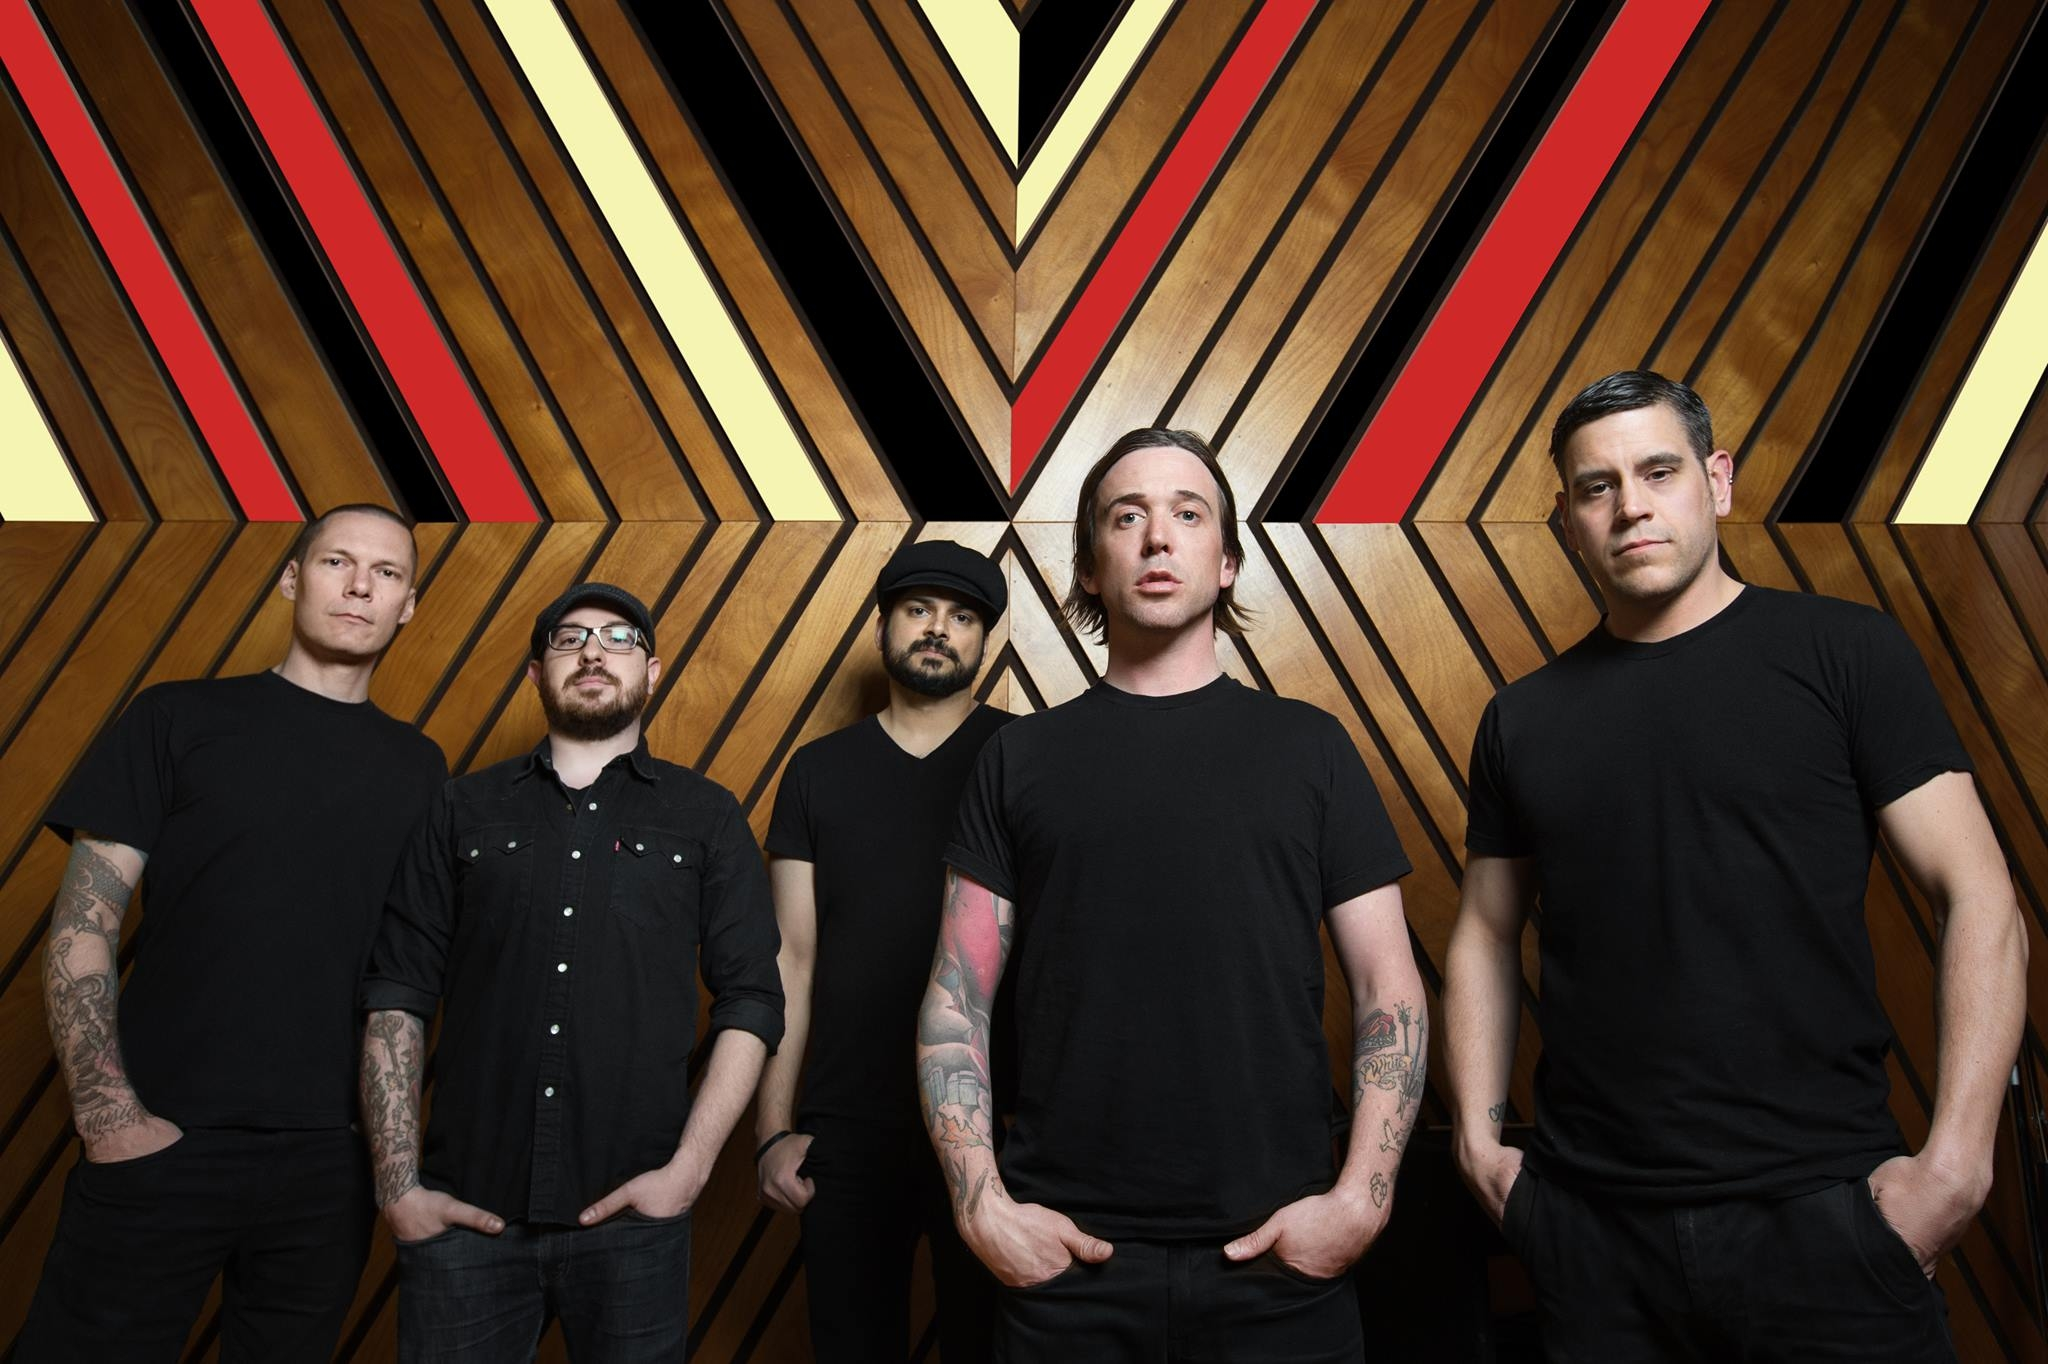 Jon Williams vs. Billy Talent